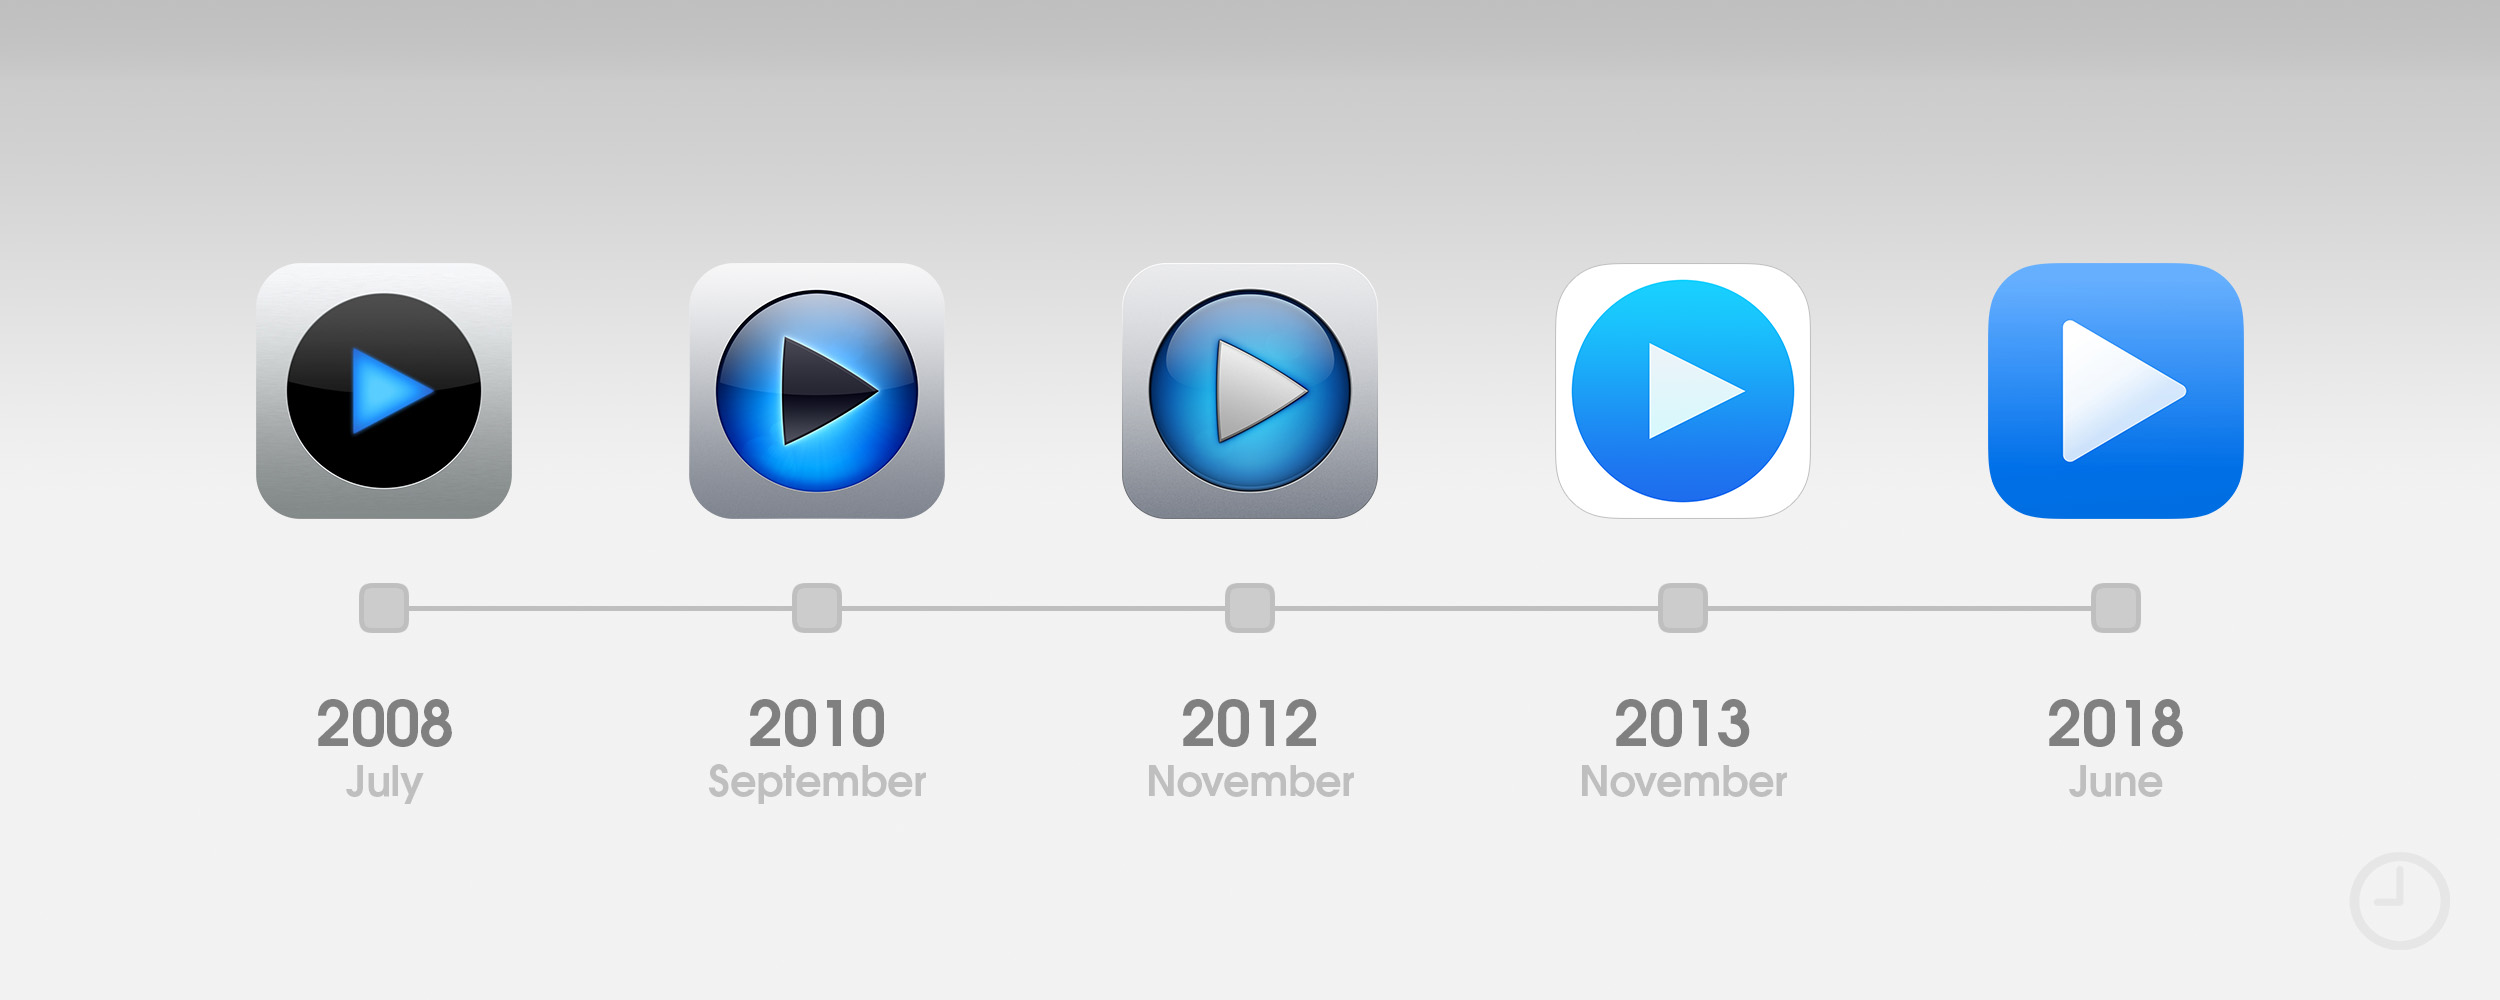 10 Years Of The App Store The Design Evolution Of The Earliest Apps 9to5mac